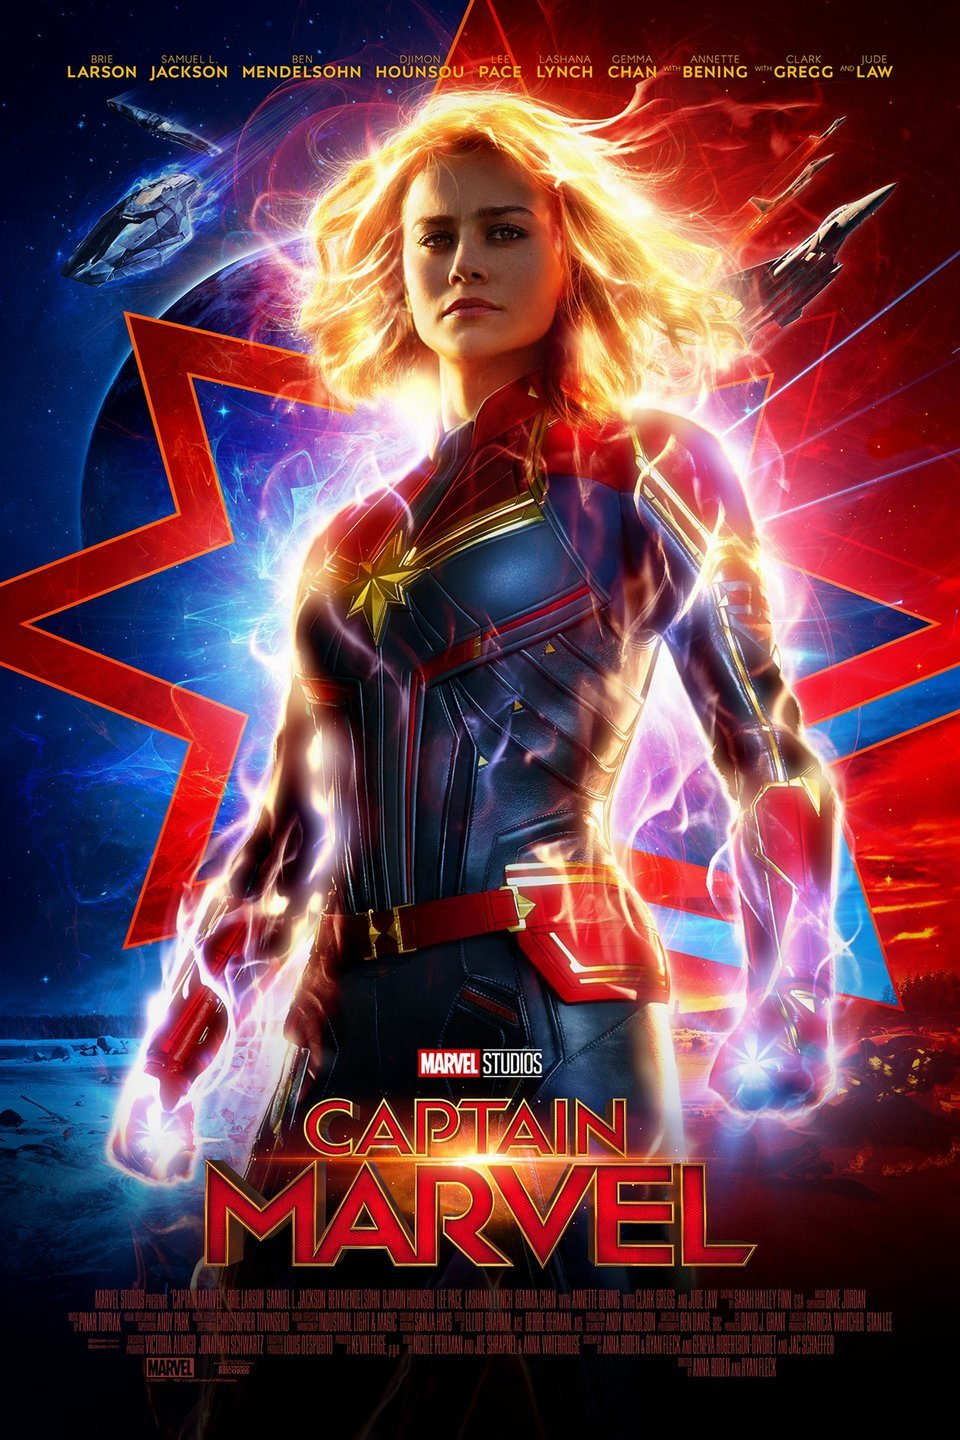 The Captain Marvel poster courtesy of both Marvel Studios and Google.